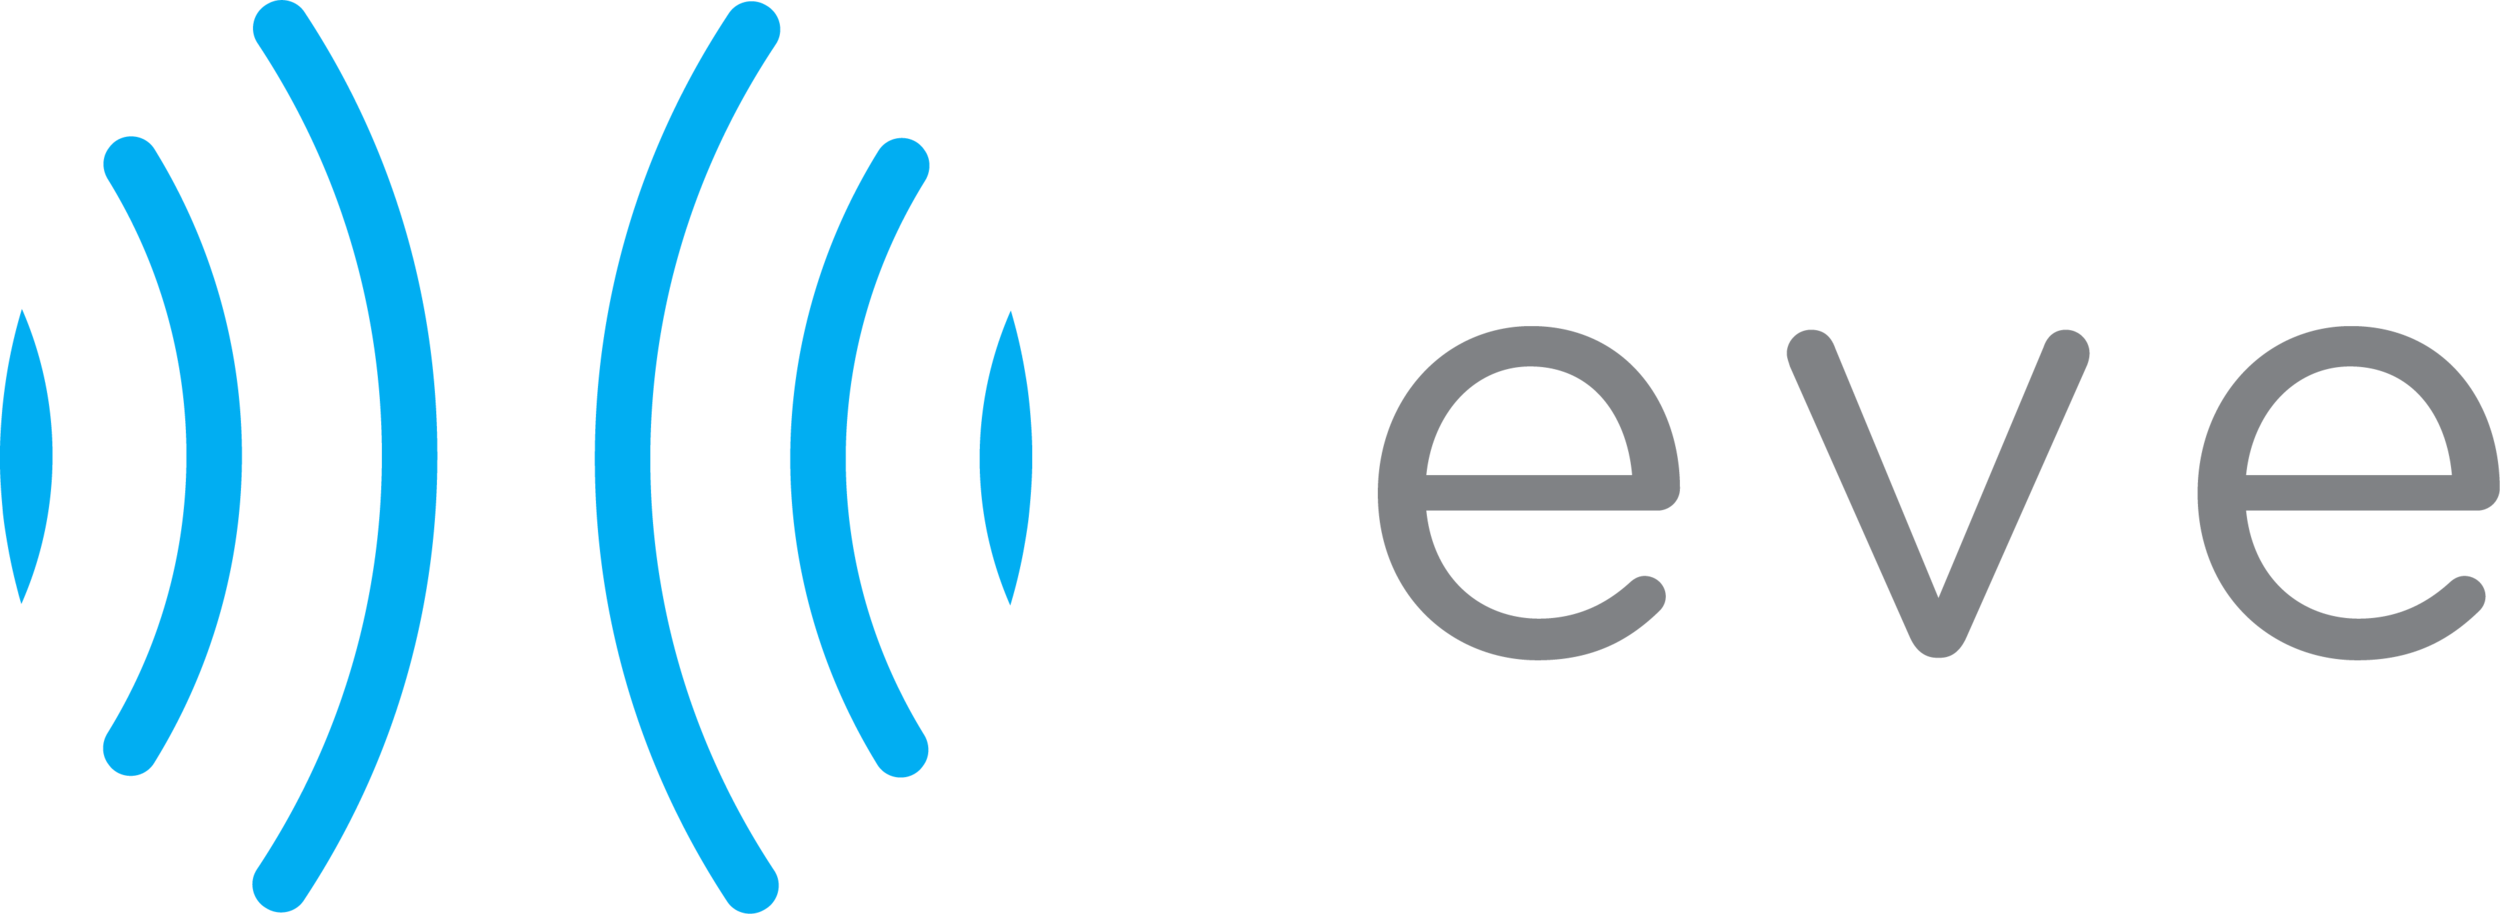 evecare_logo_horizontal_color.png